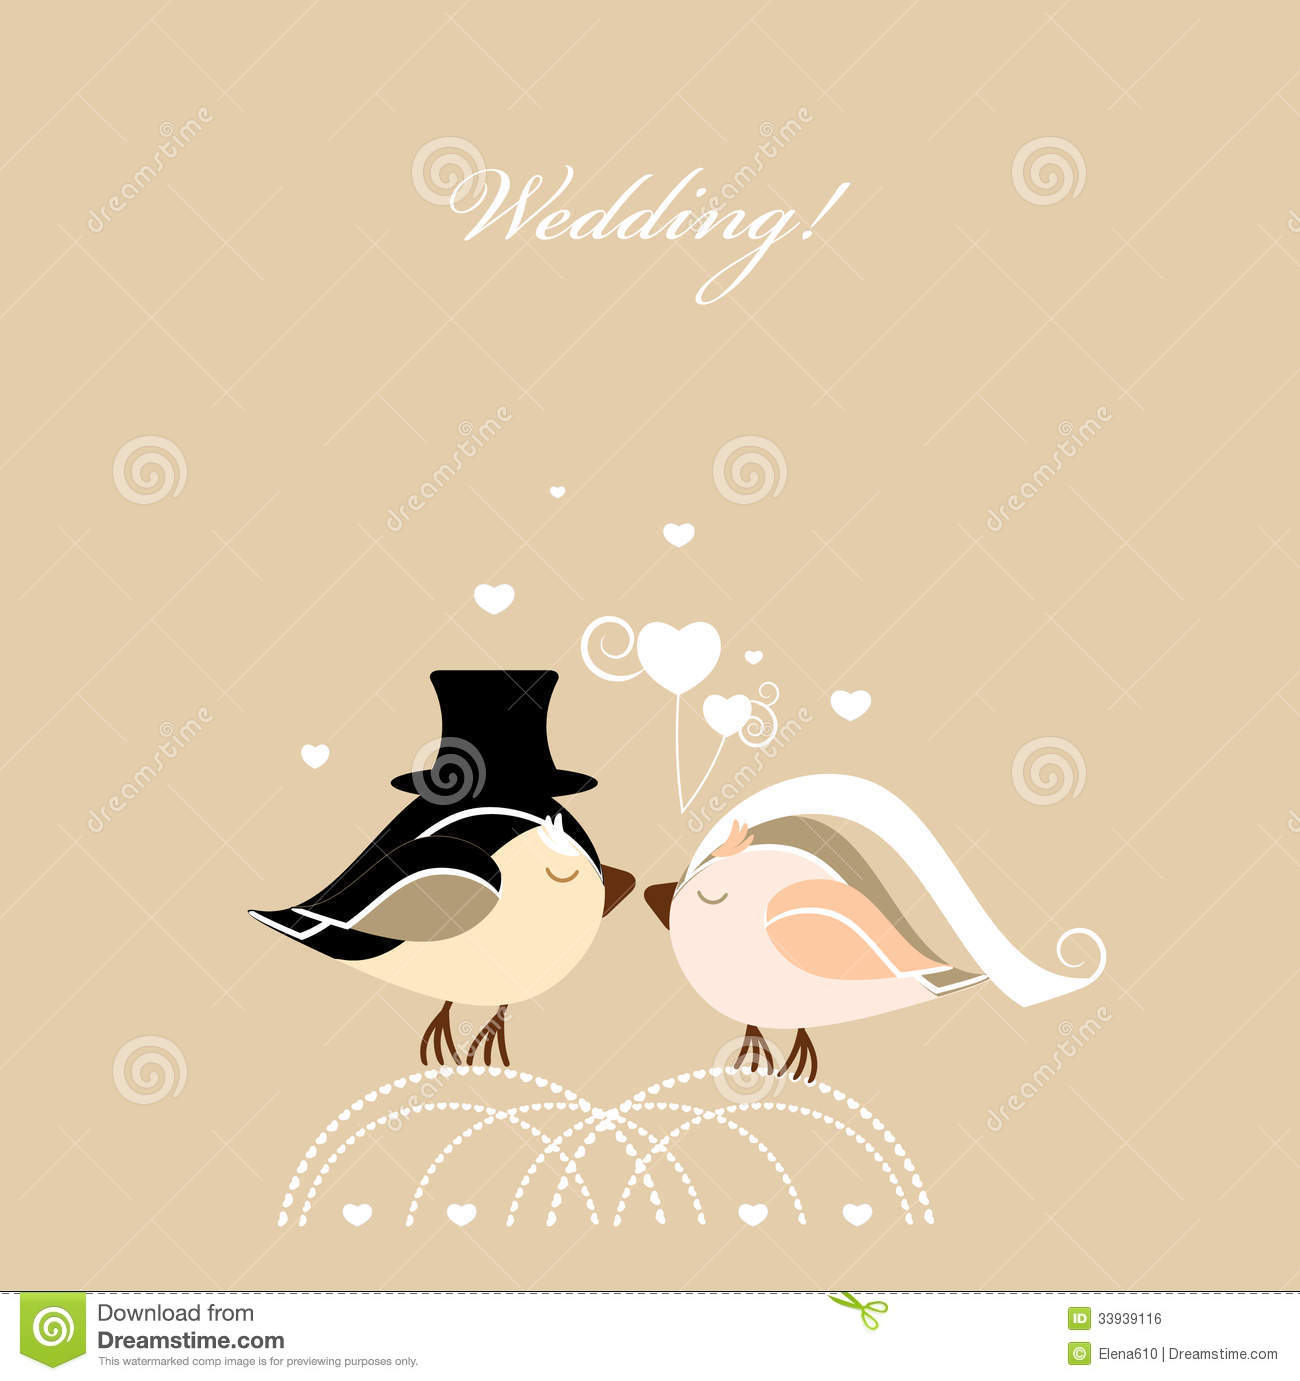 wedding card with birds royalty free stock image image